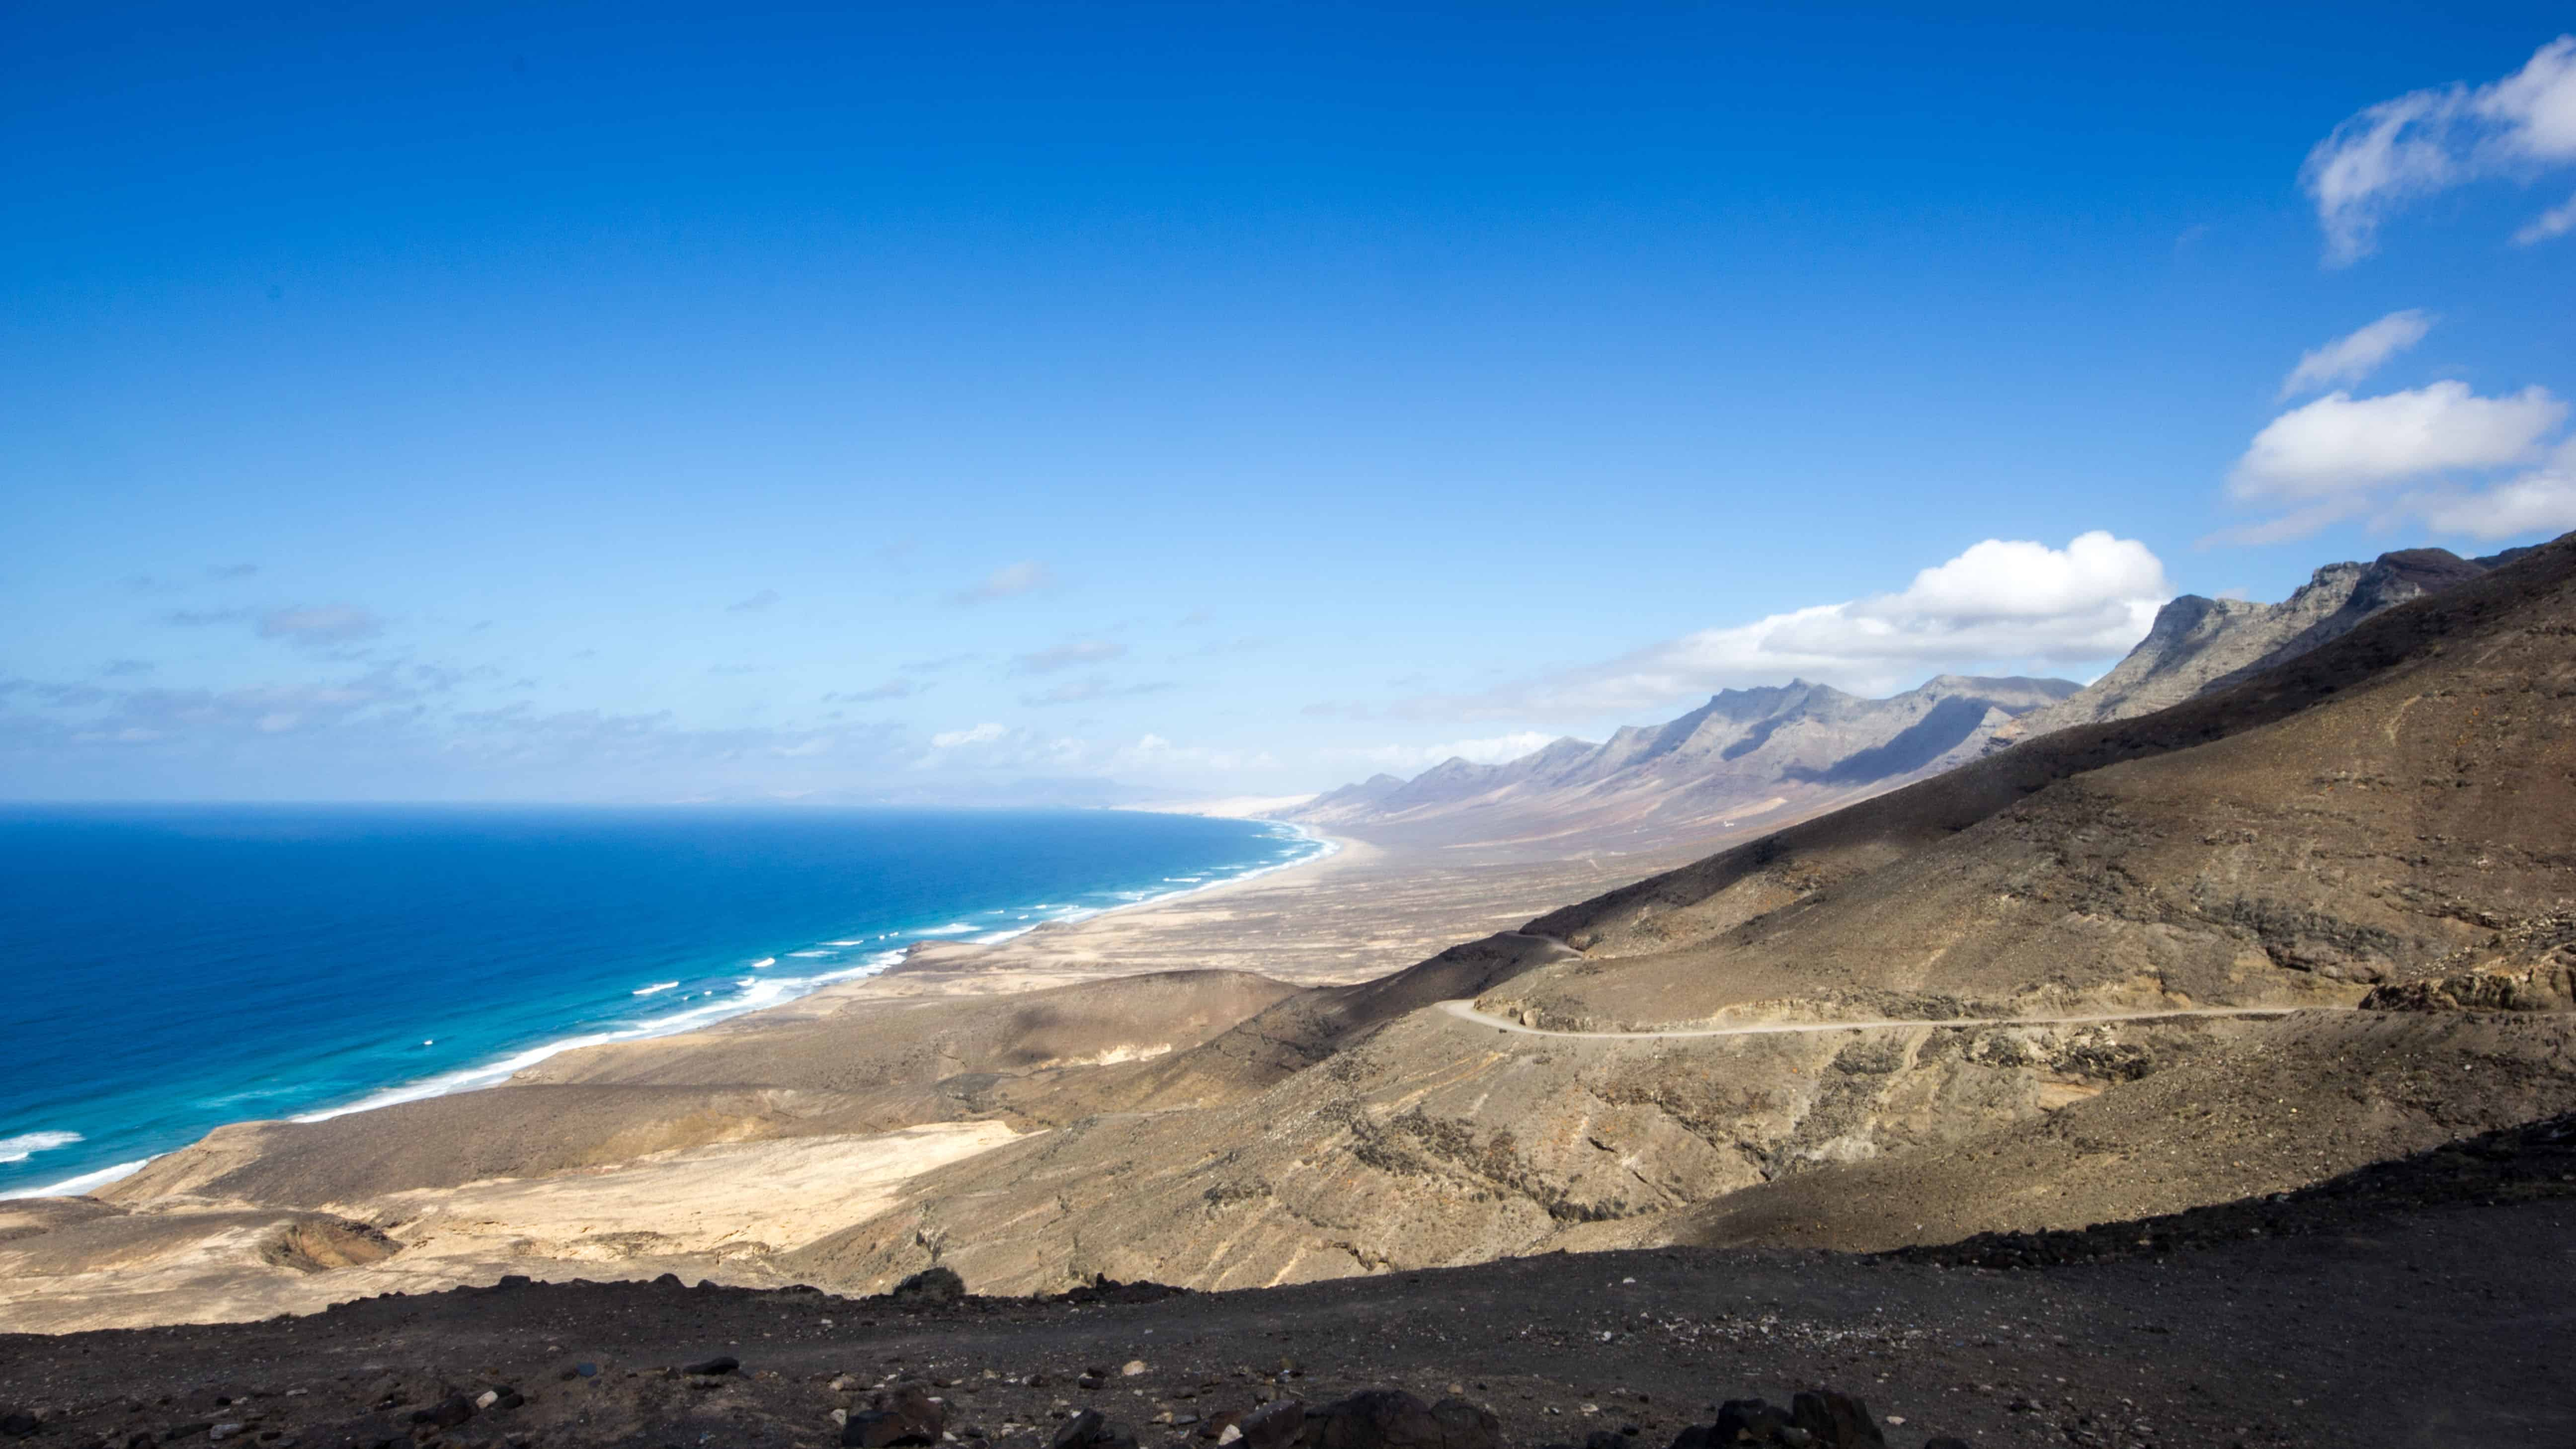 Top 5 places to visit in Fuerteventura